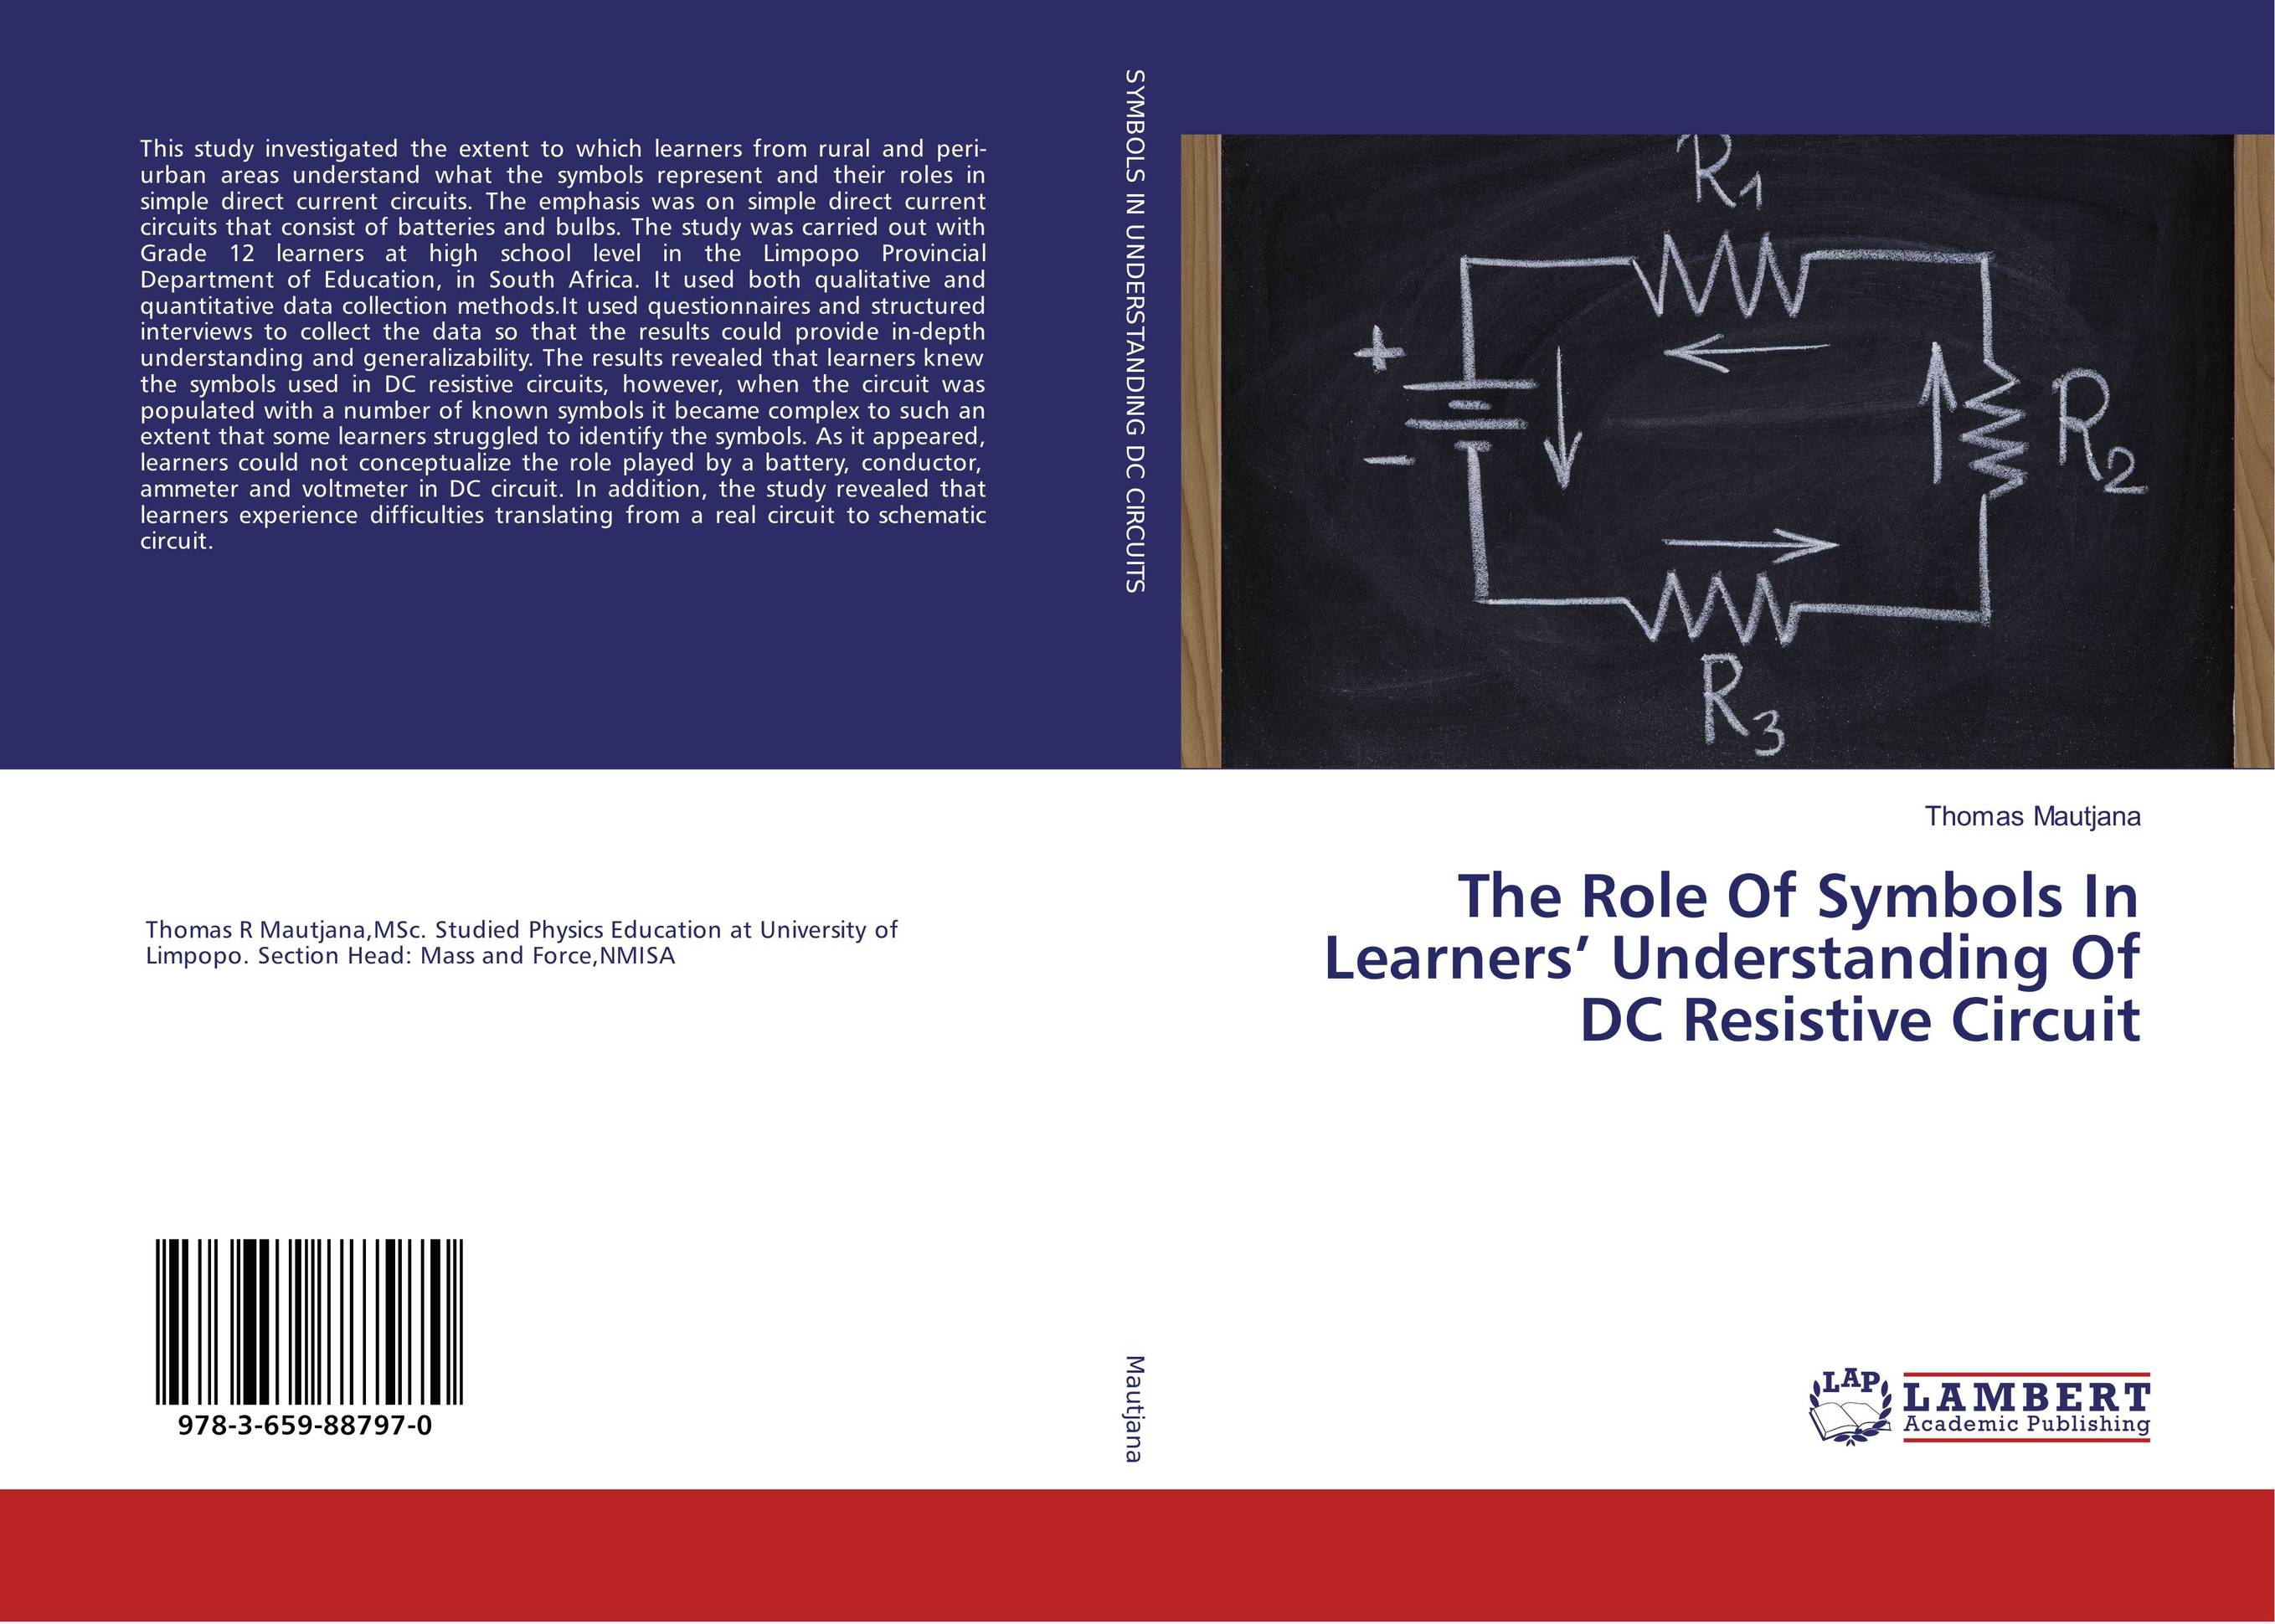 The Role Of Symbols In Learners' Understanding Of DC Resistive Circuit